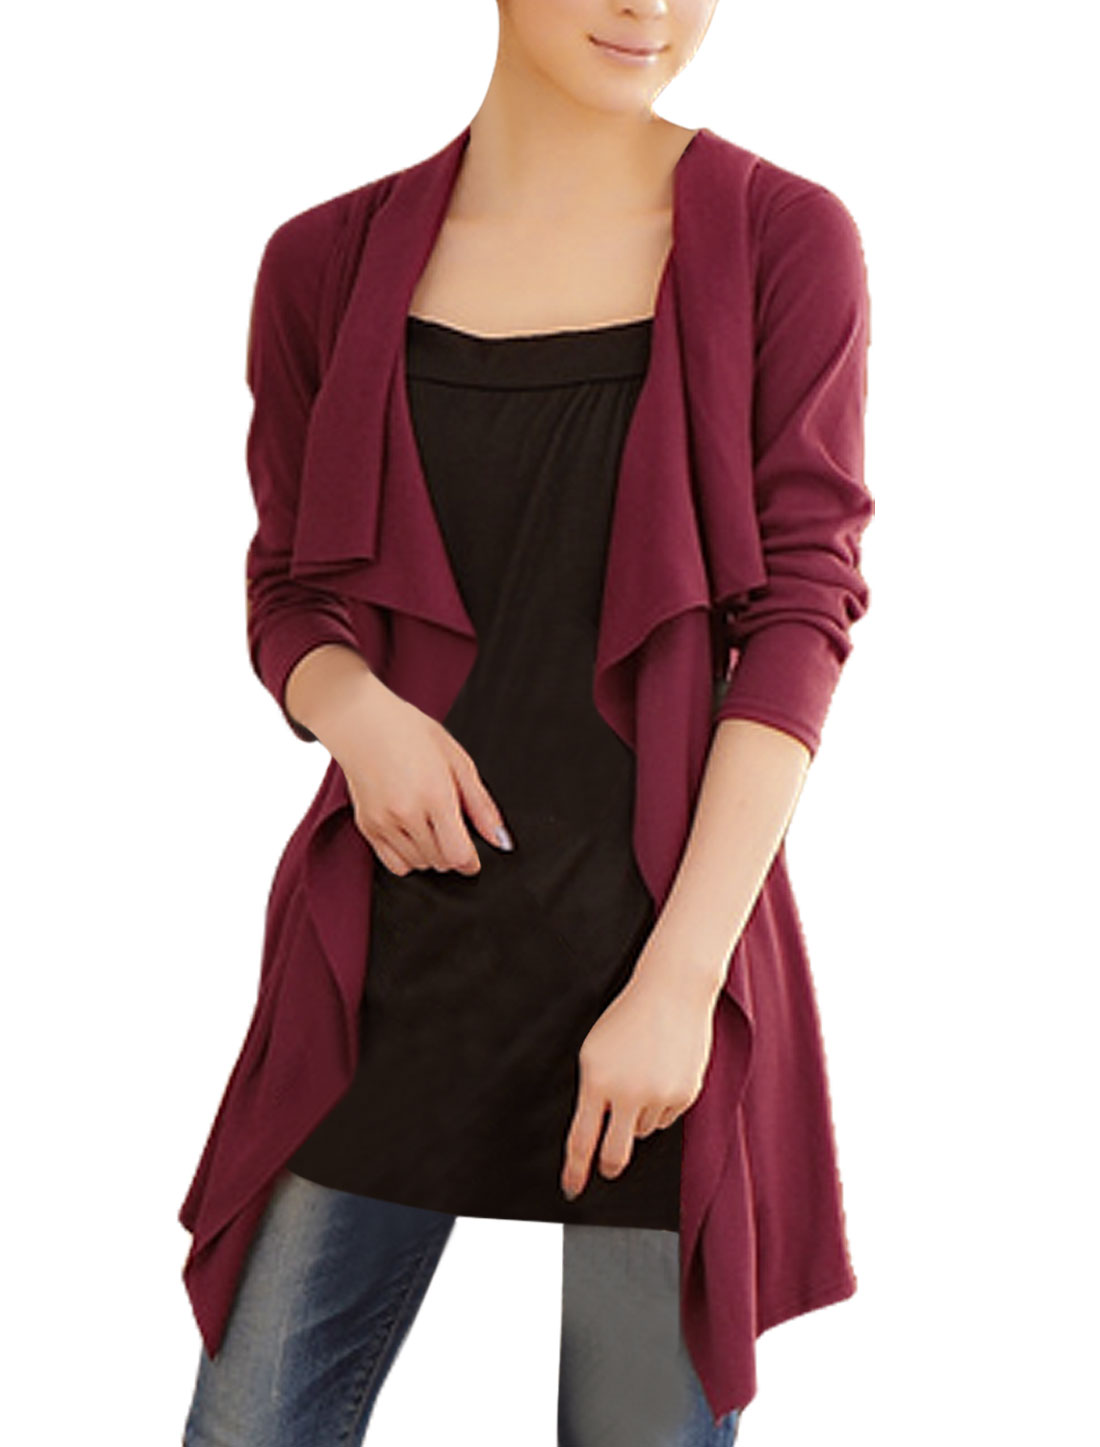 Burgundy Black Long Sleeve Layered Shirts Tunic Shirt XS for Women